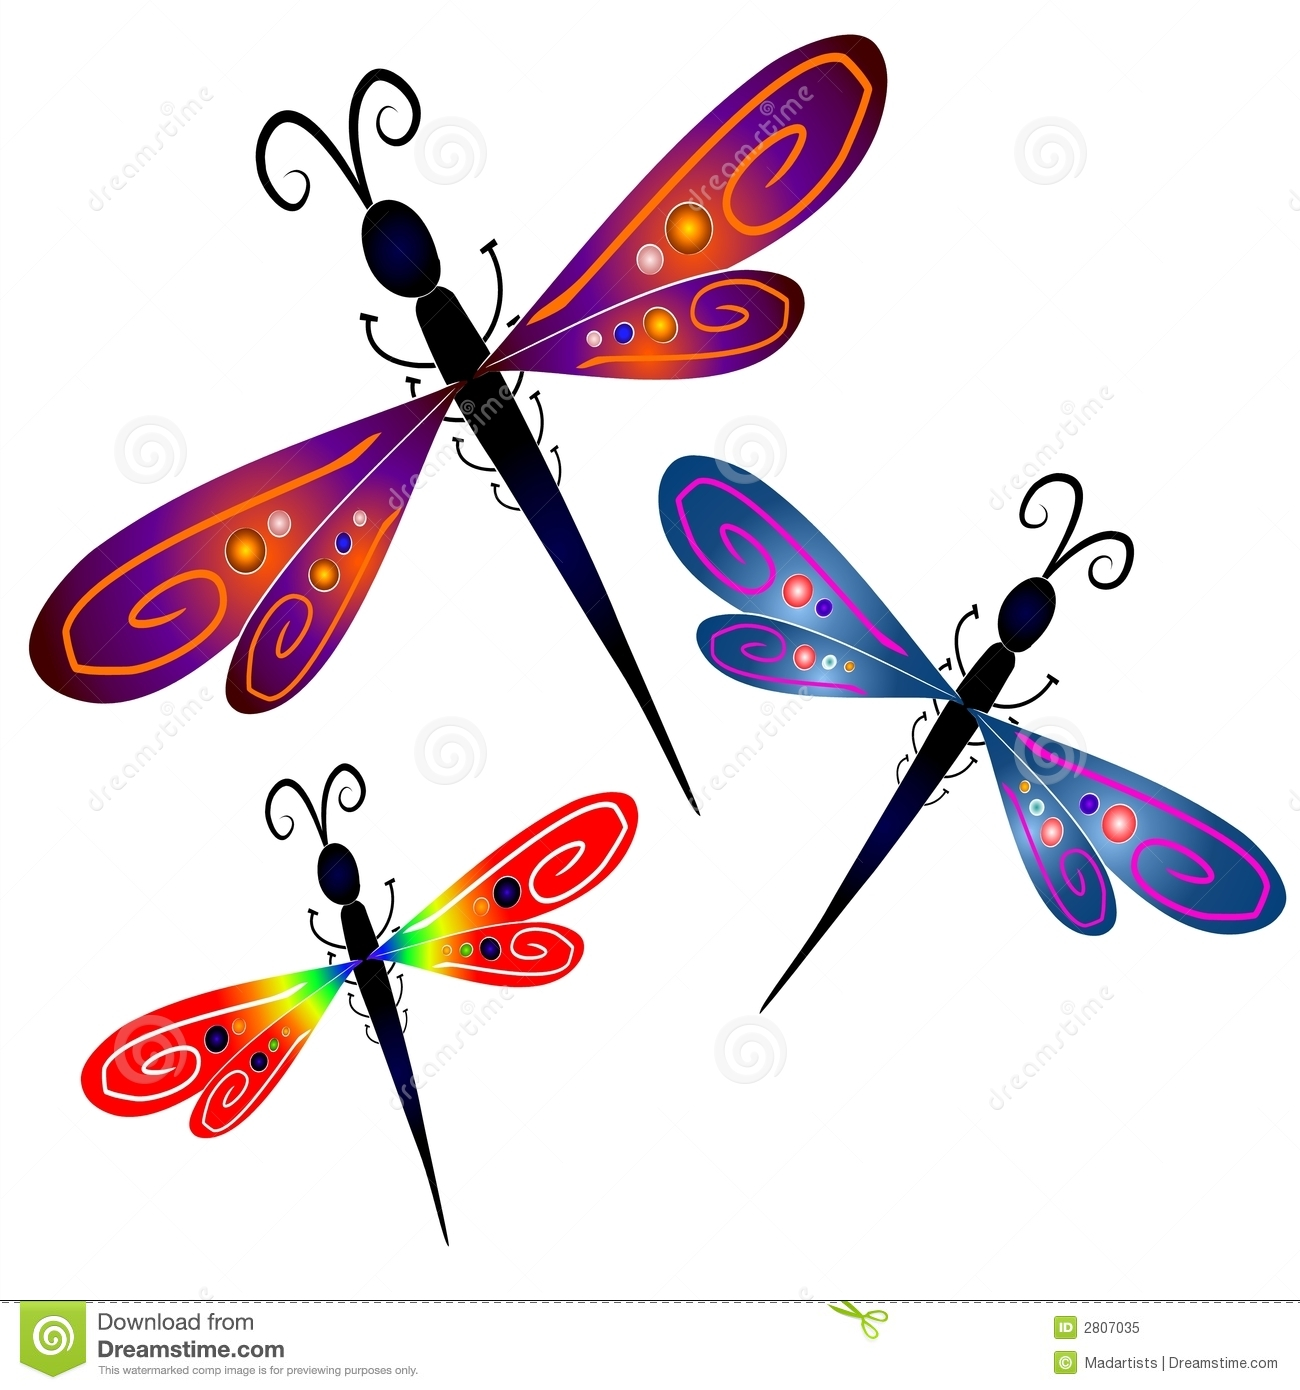 Abstract Dragonfly Clip Art Royalty Free-Abstract Dragonfly Clip Art Royalty Free Stock Photo-10